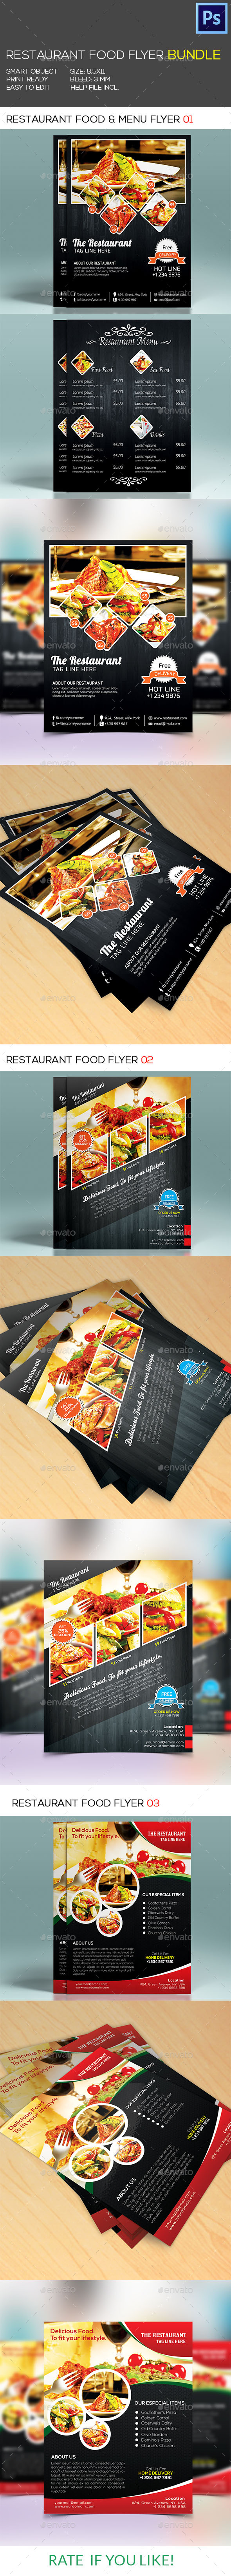 Restaurant Food & Menu Flyer Bundle - Restaurant Flyers